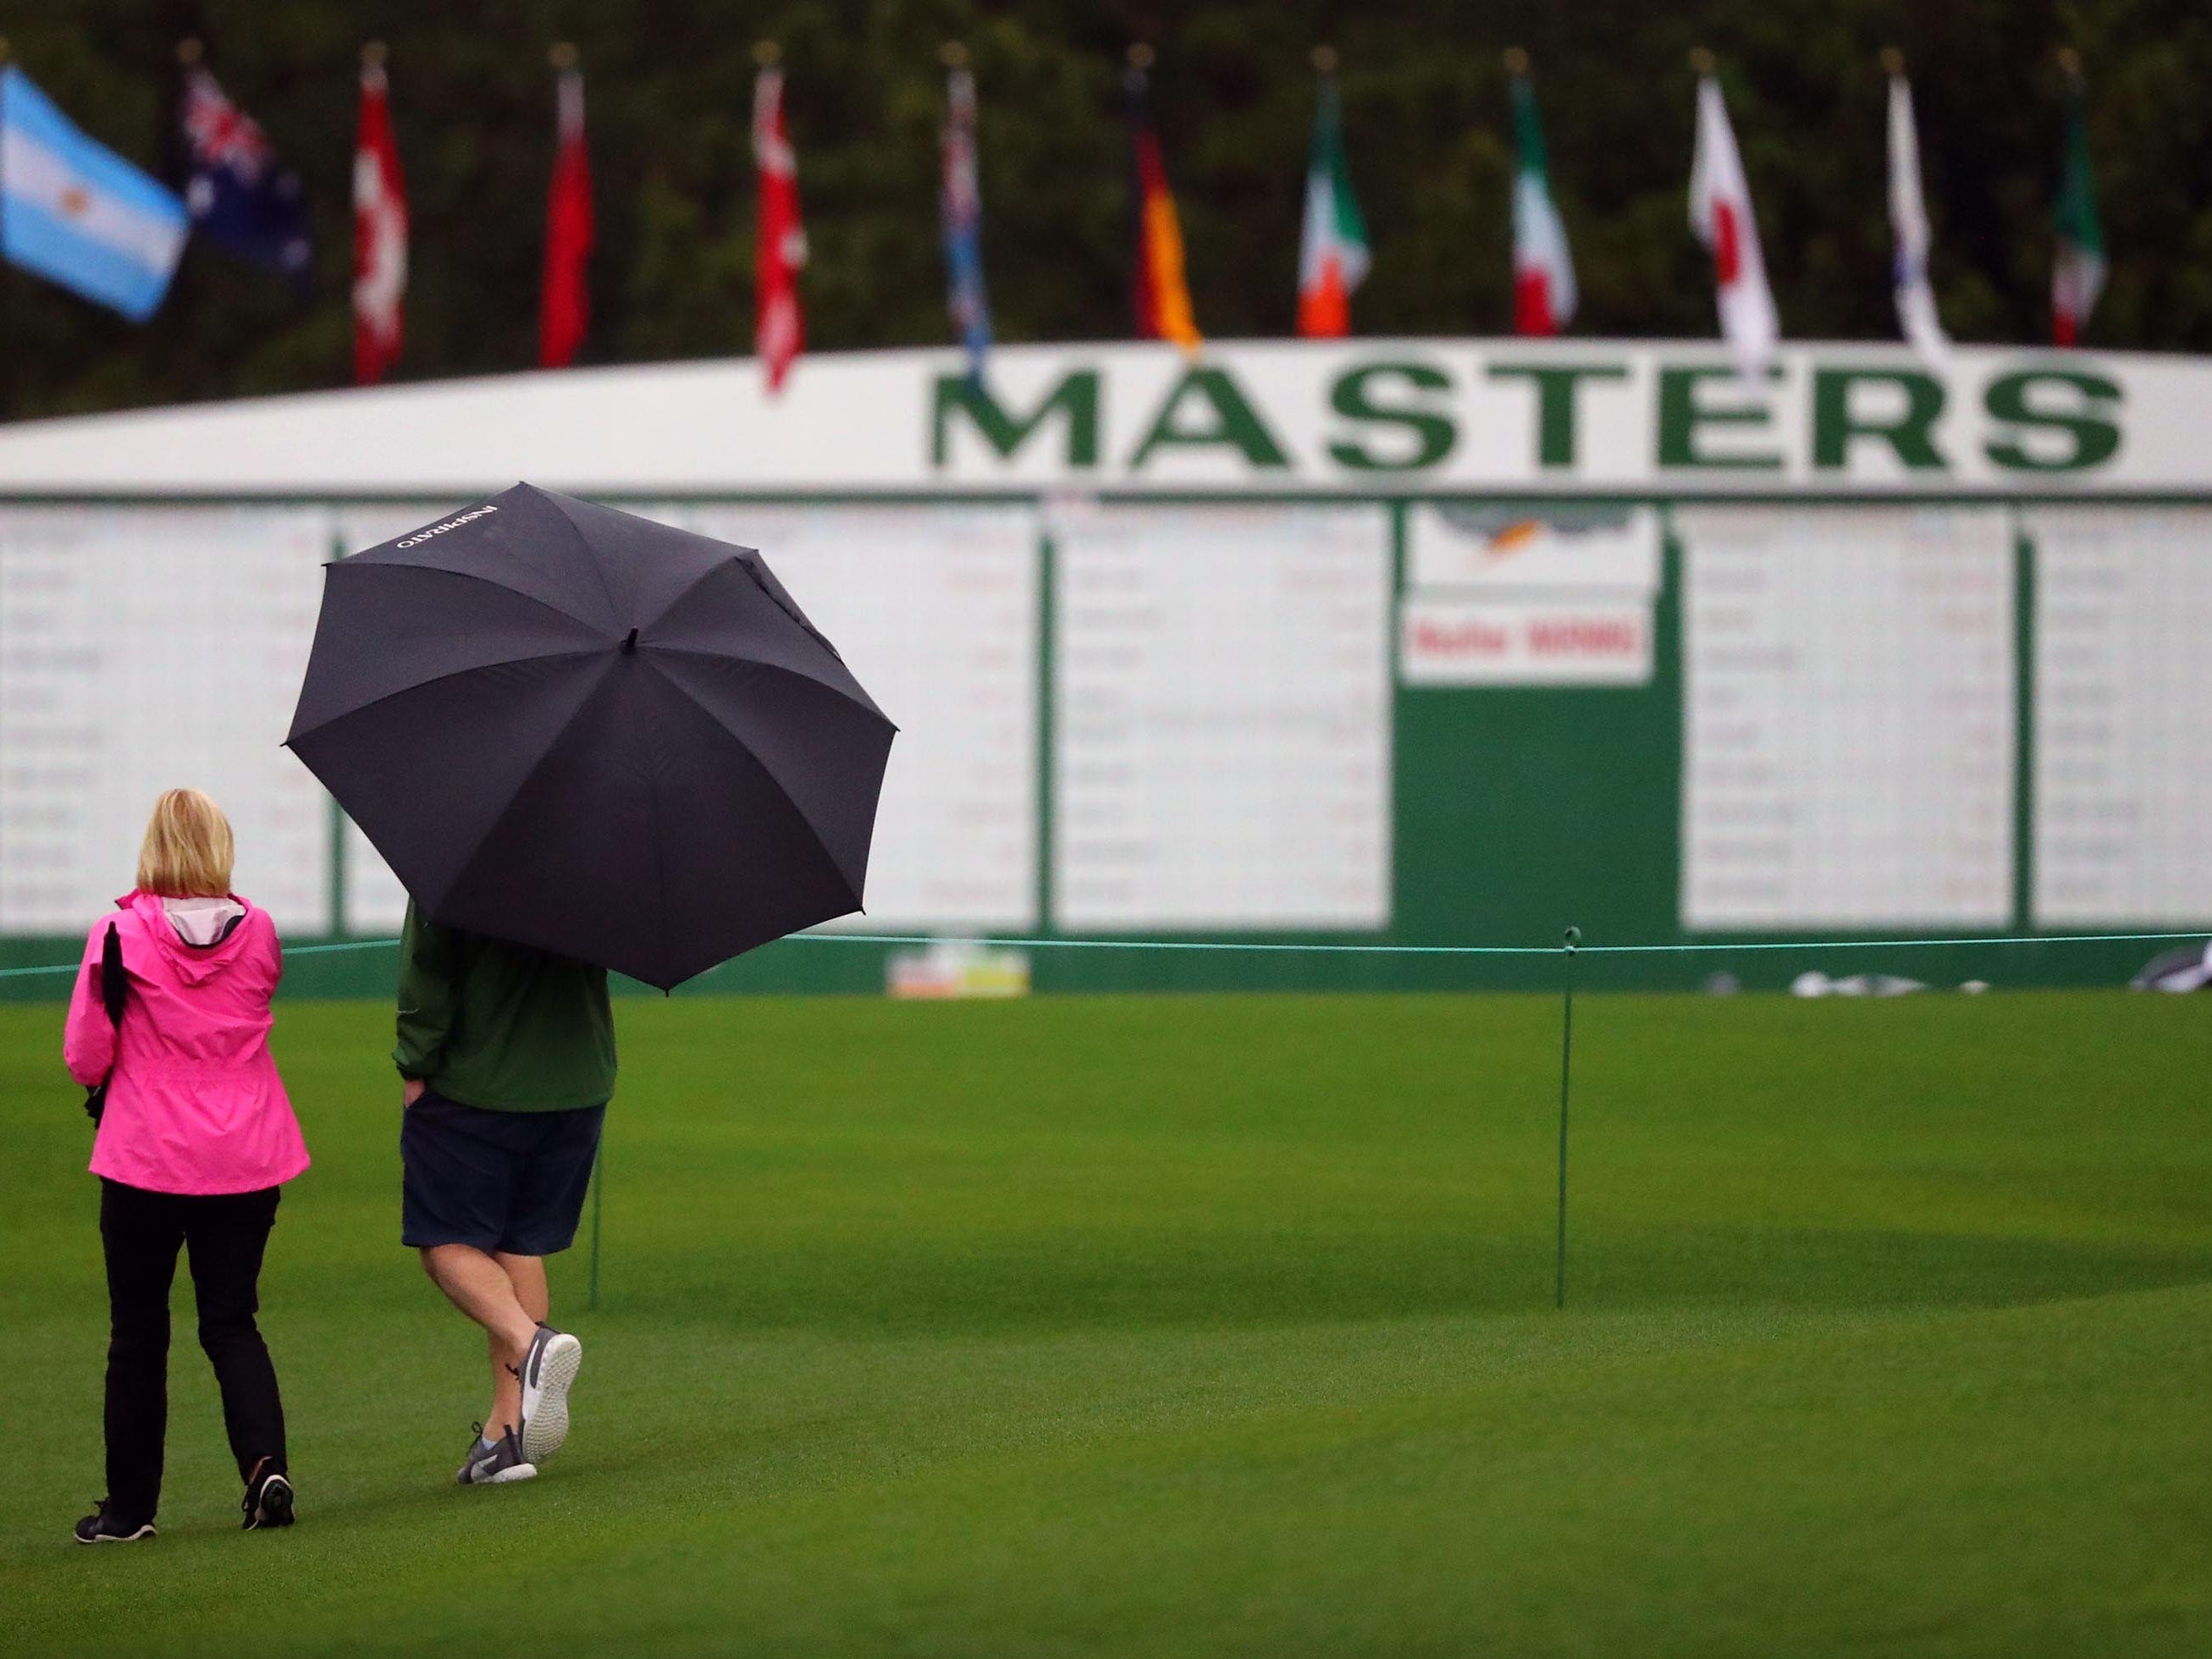 Patrons take the course under a weather warning with rain and the threat of thunderstorms during a practice round for The Masters golf tournament at Augusta National Golf Club.